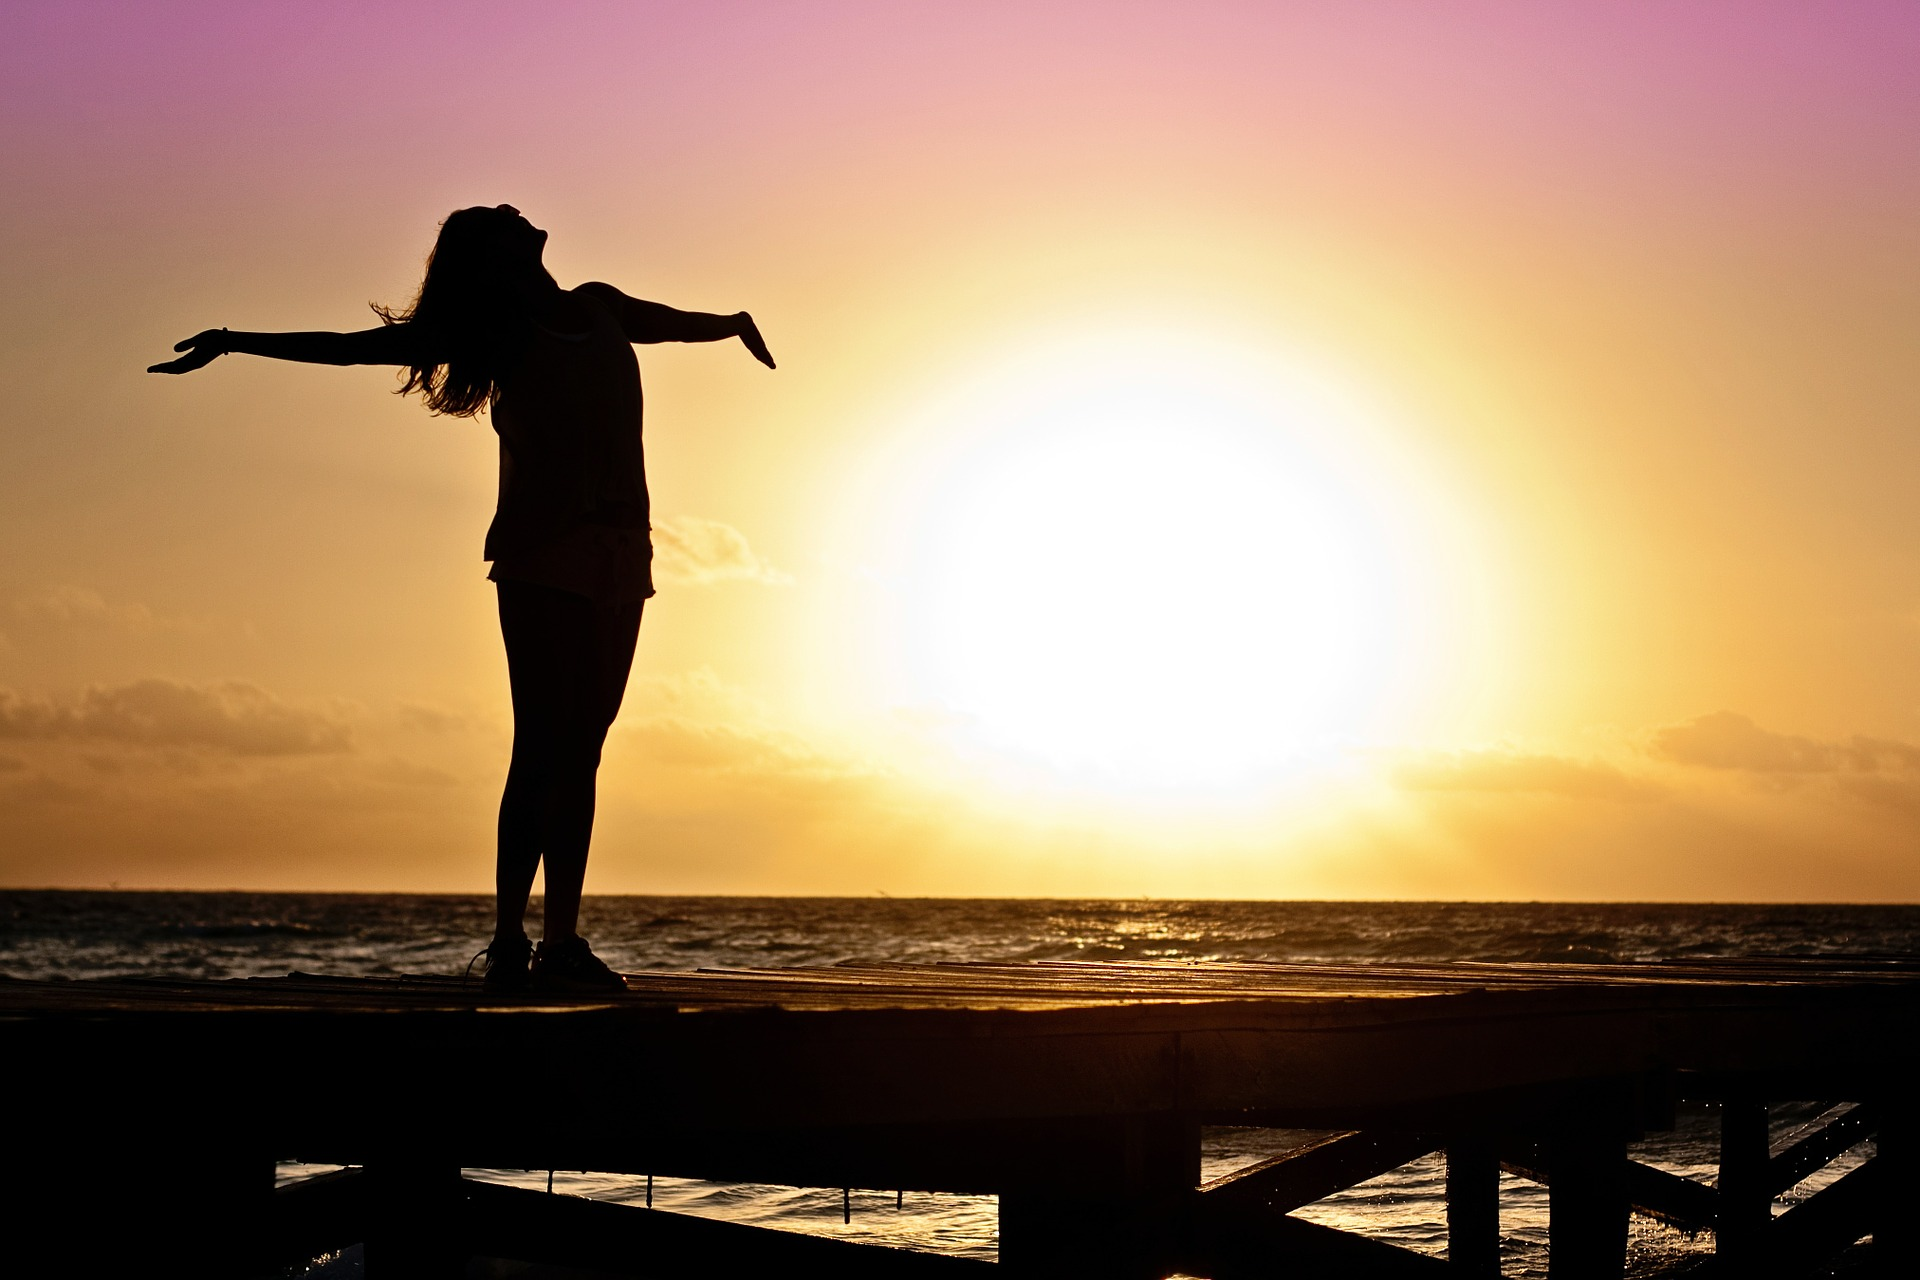 Feel the happiness and freedom in your life Psychic will give you more